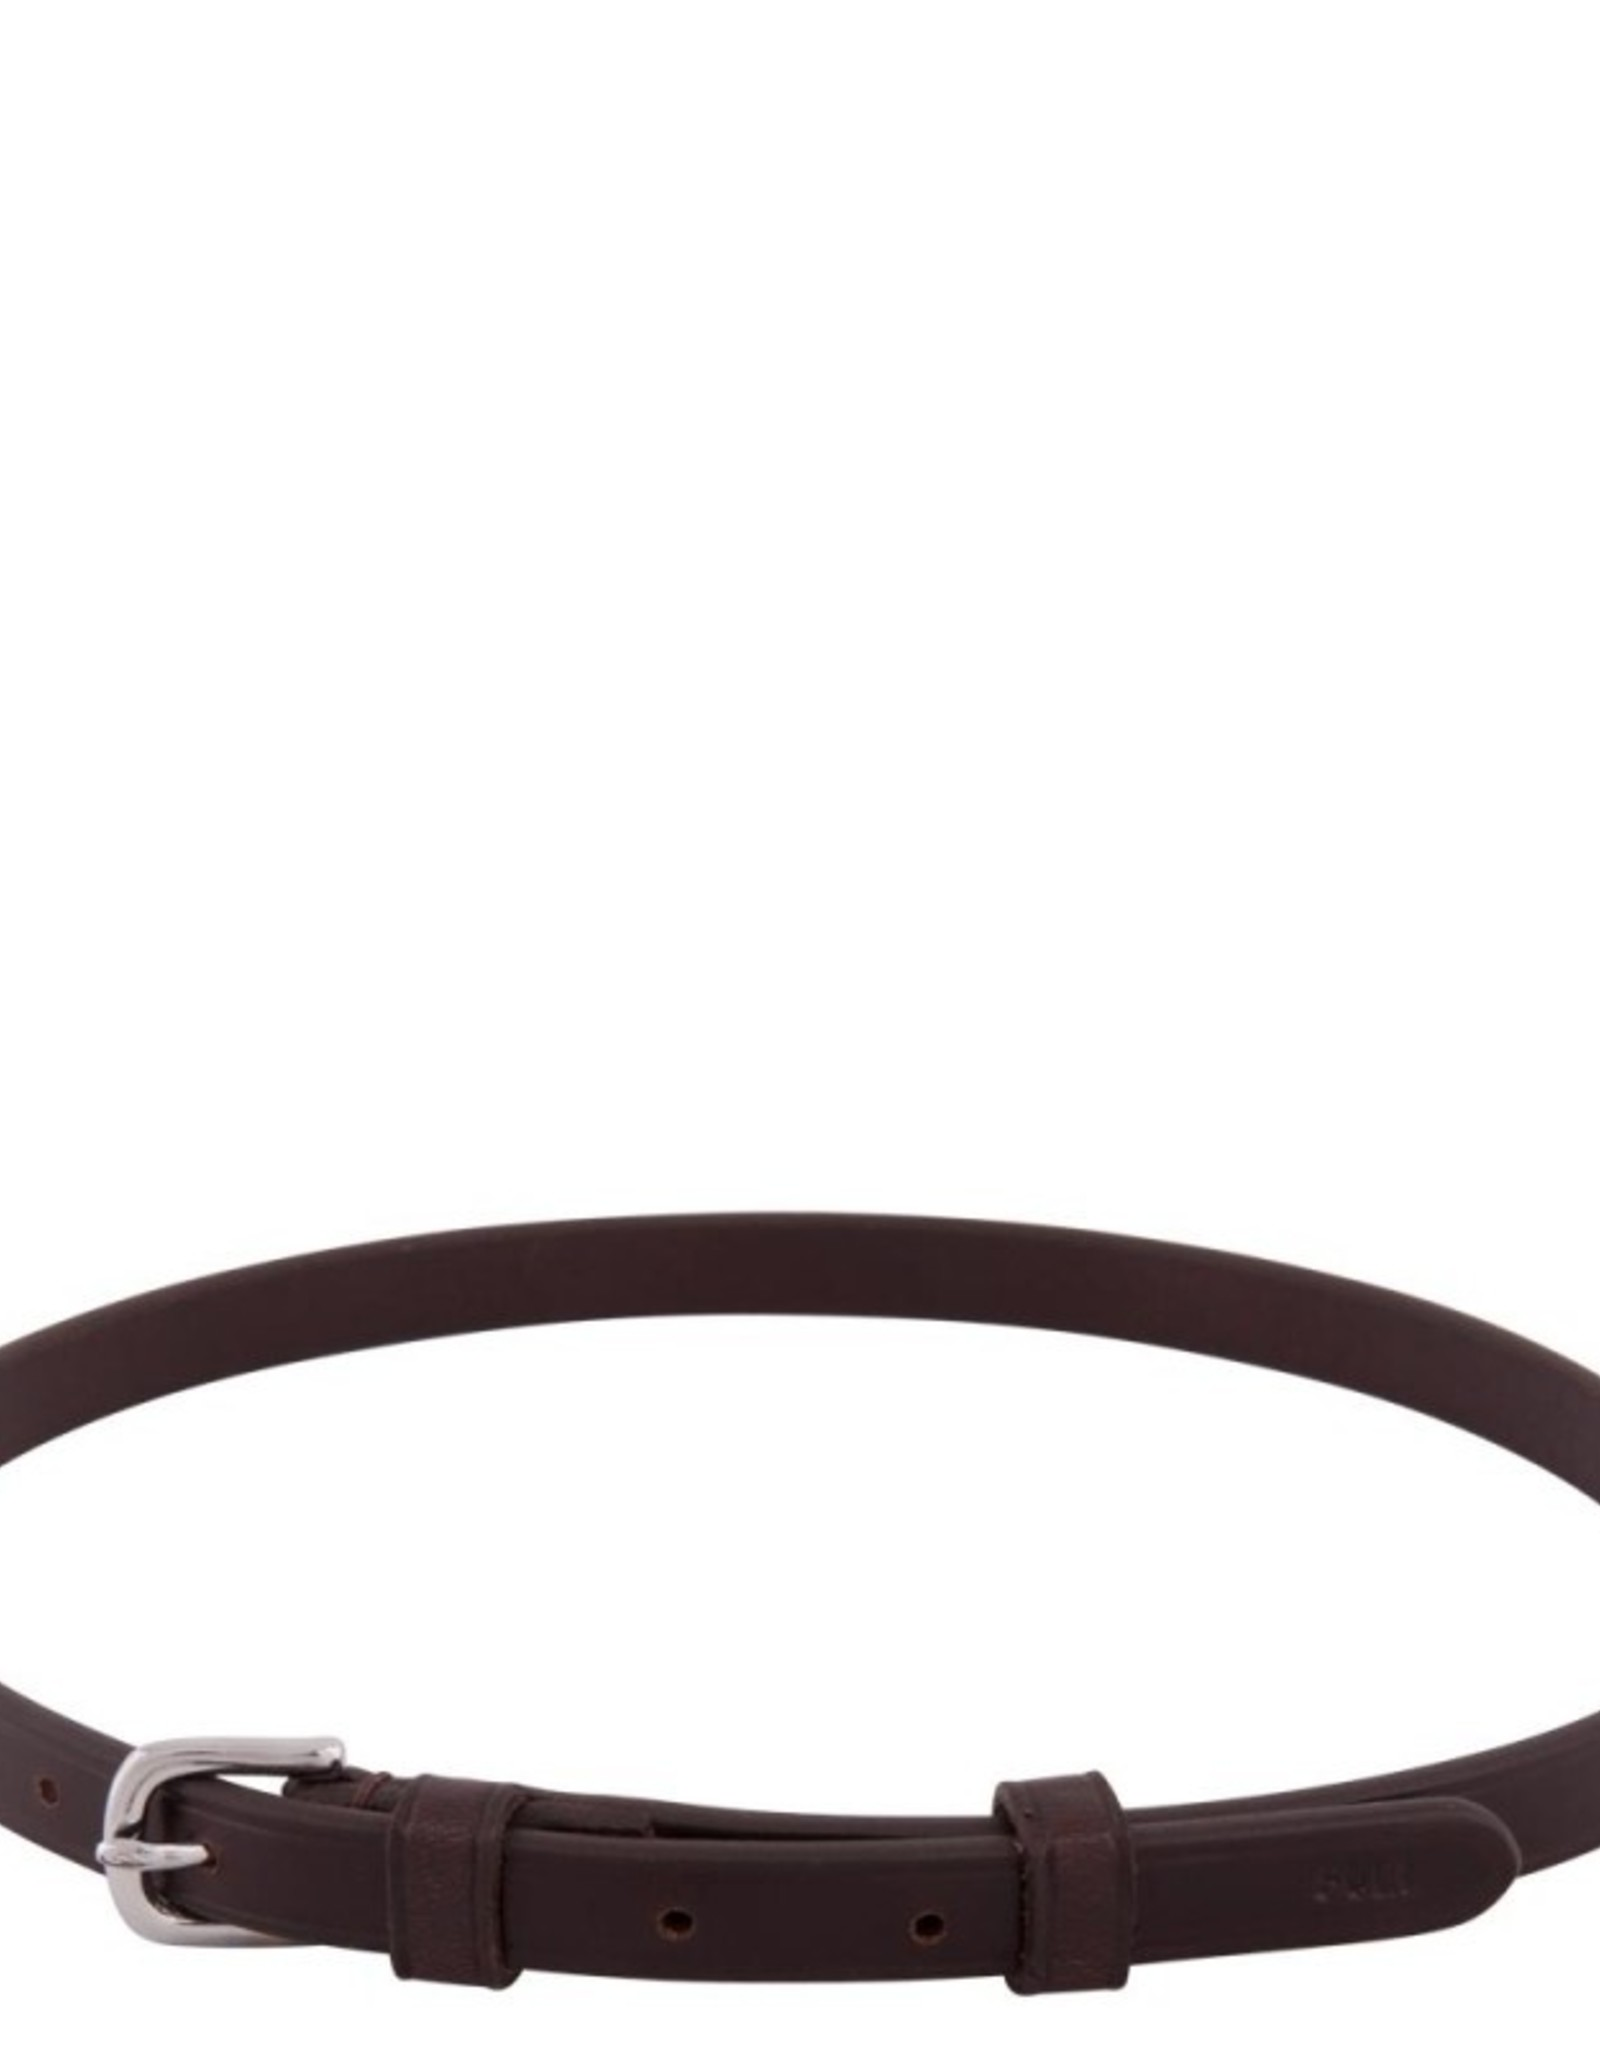 BR FLASH STRAP WITH ROUND BUCKLE